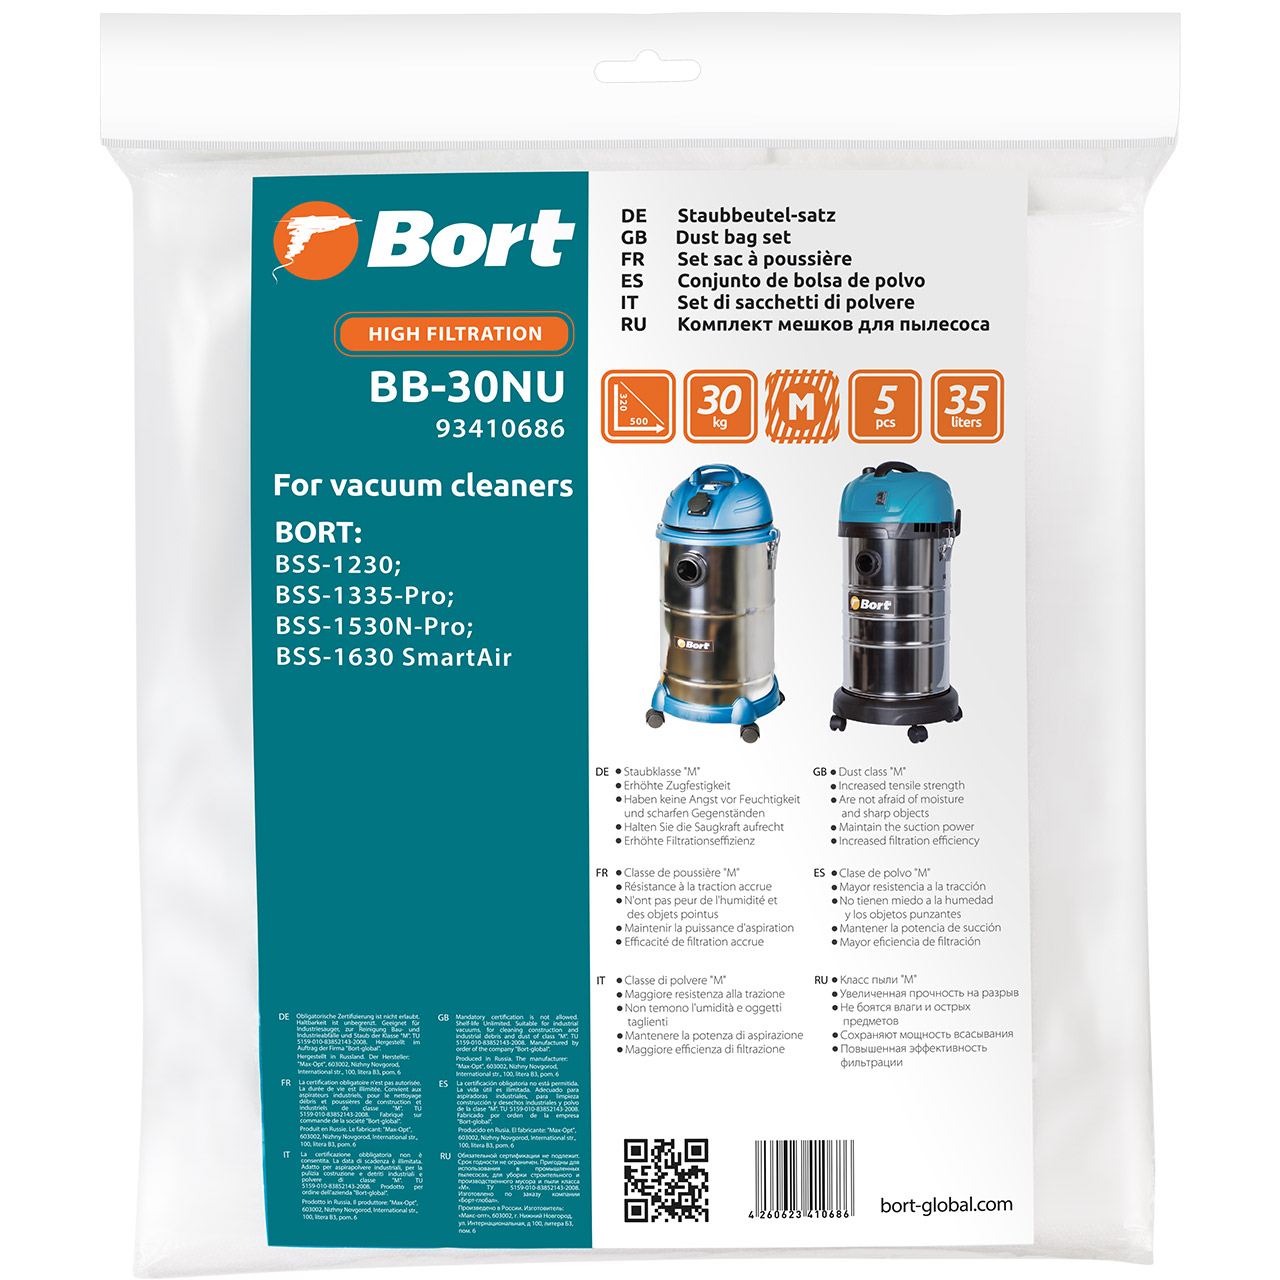 Bags set dust collection for vacuum Cleaner bort BB-30NU (5 pcs, 35l, BSS-1230; BSS-1335-Pro; BSS-1530N-Pro; BSS-1630S